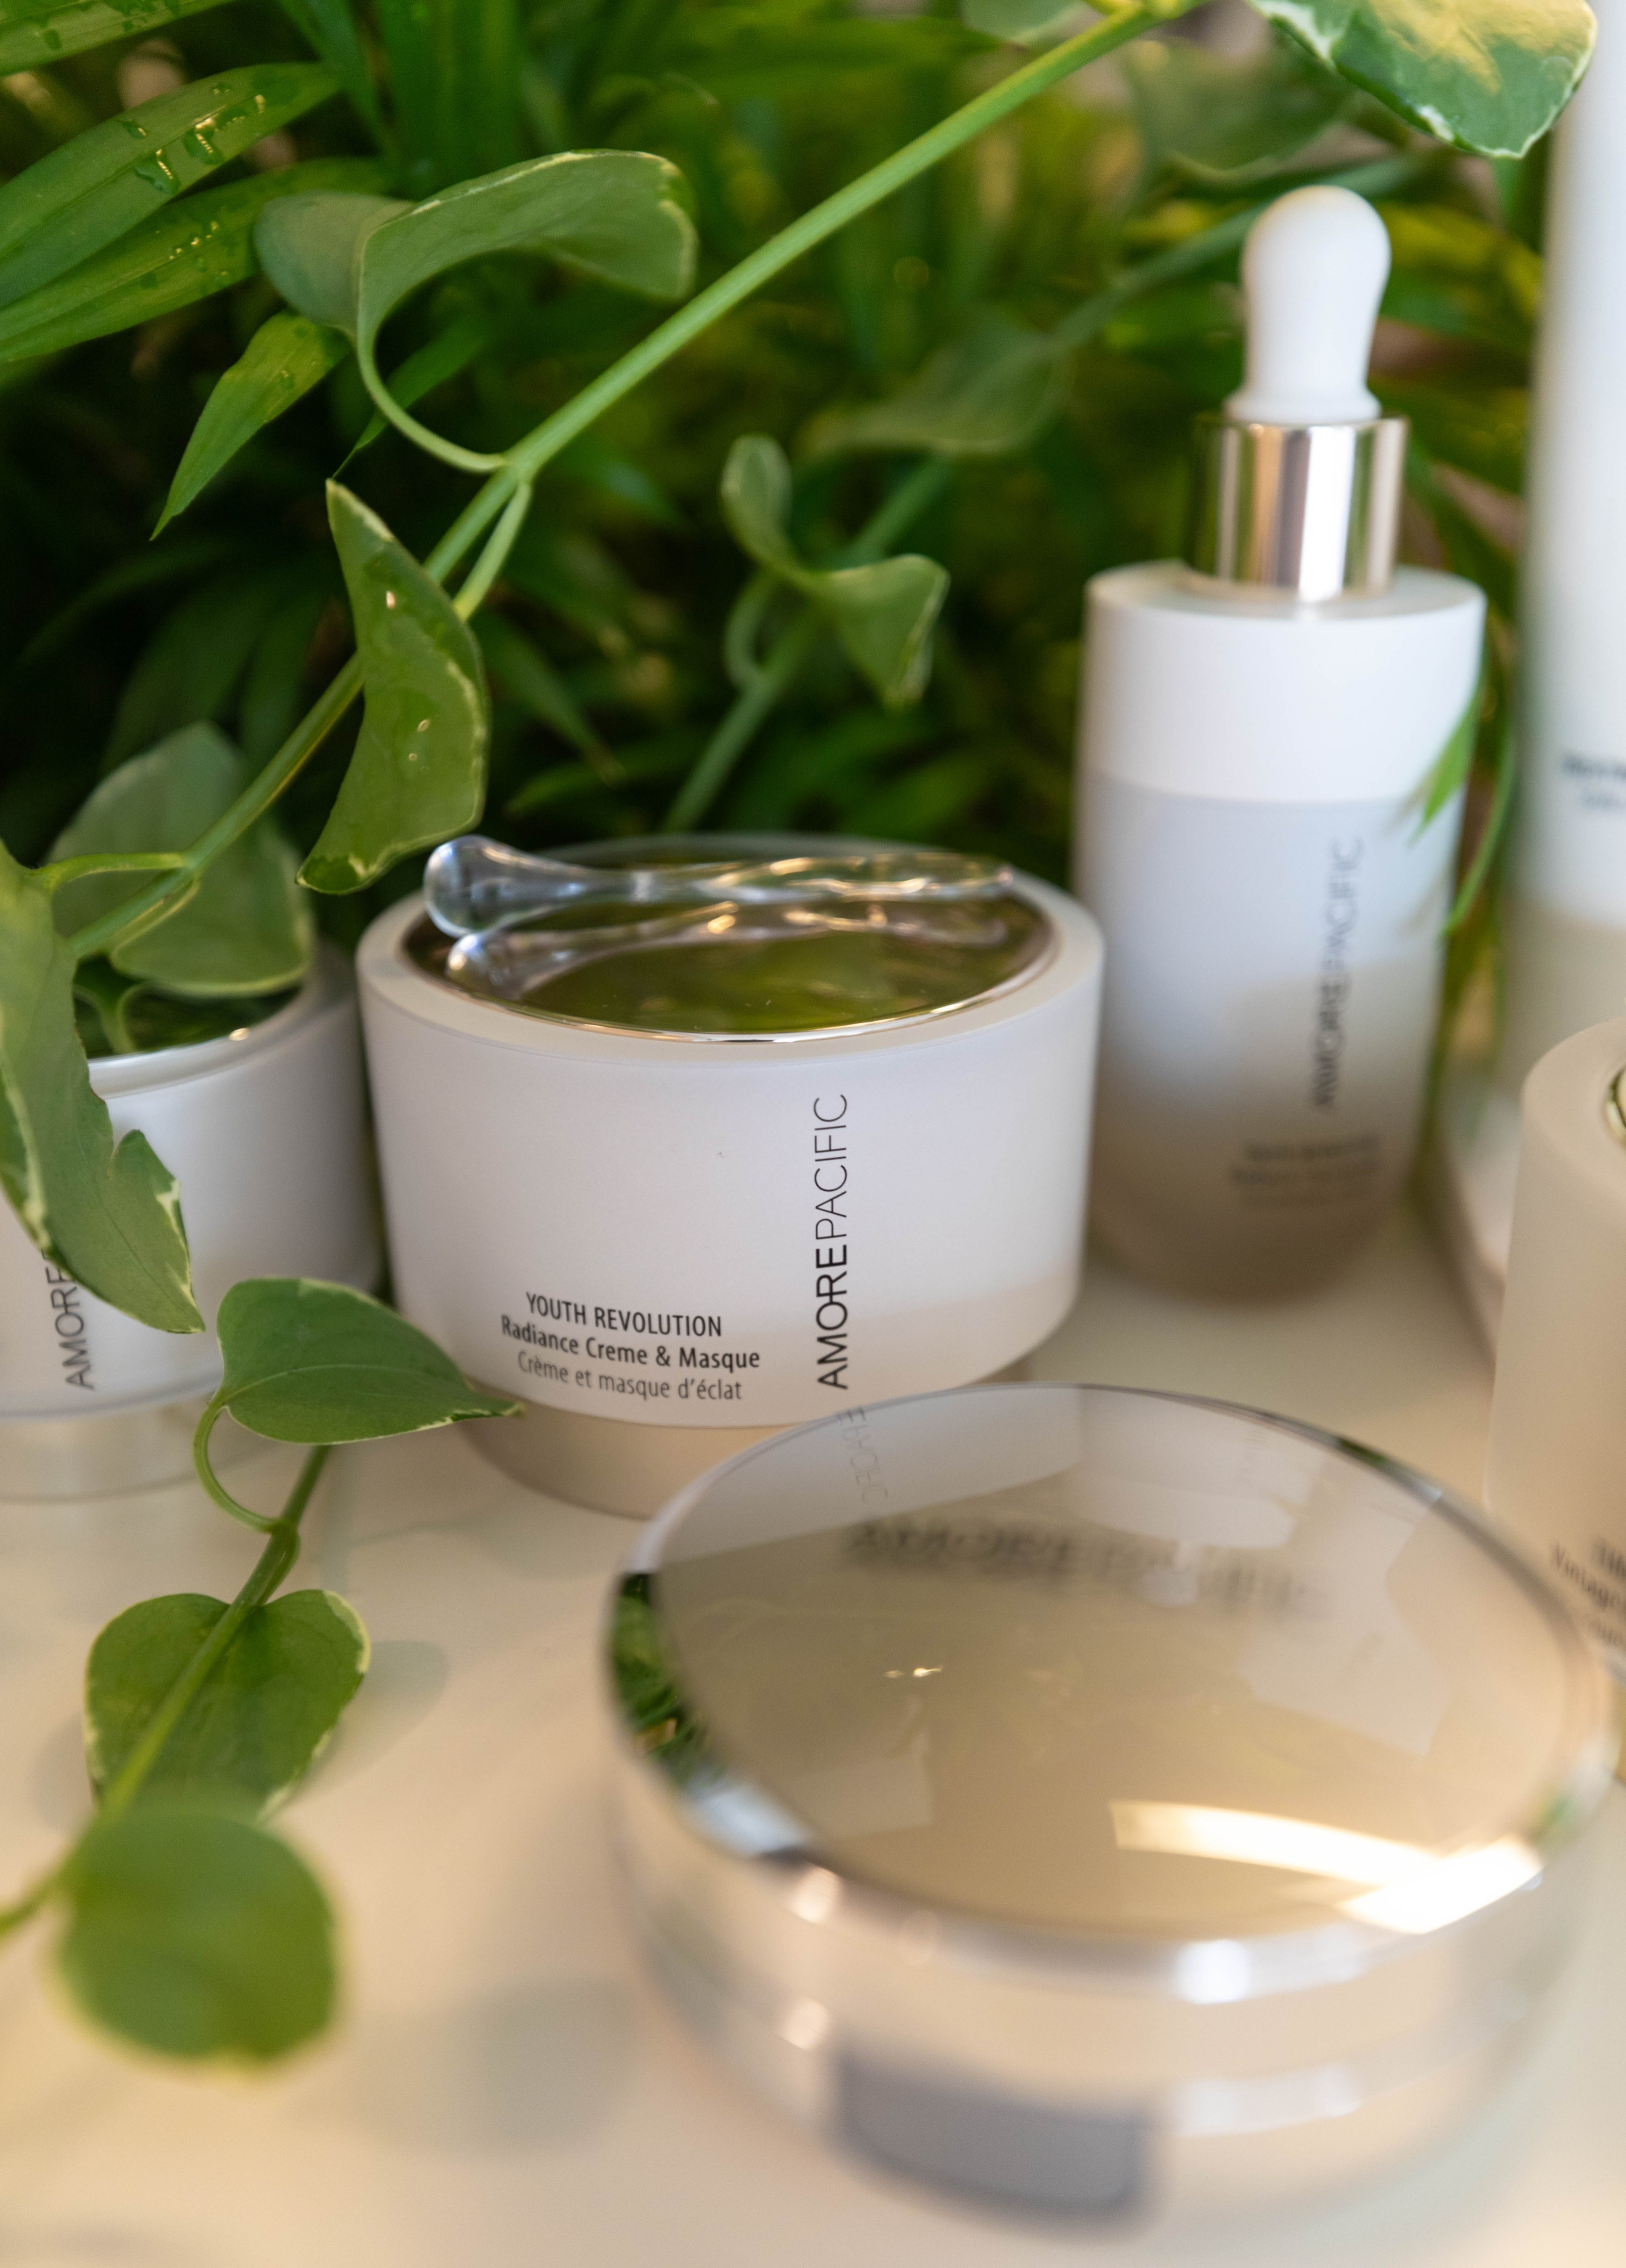 My 10 Step Korean Beauty Regimen with Amorepacific Skincare